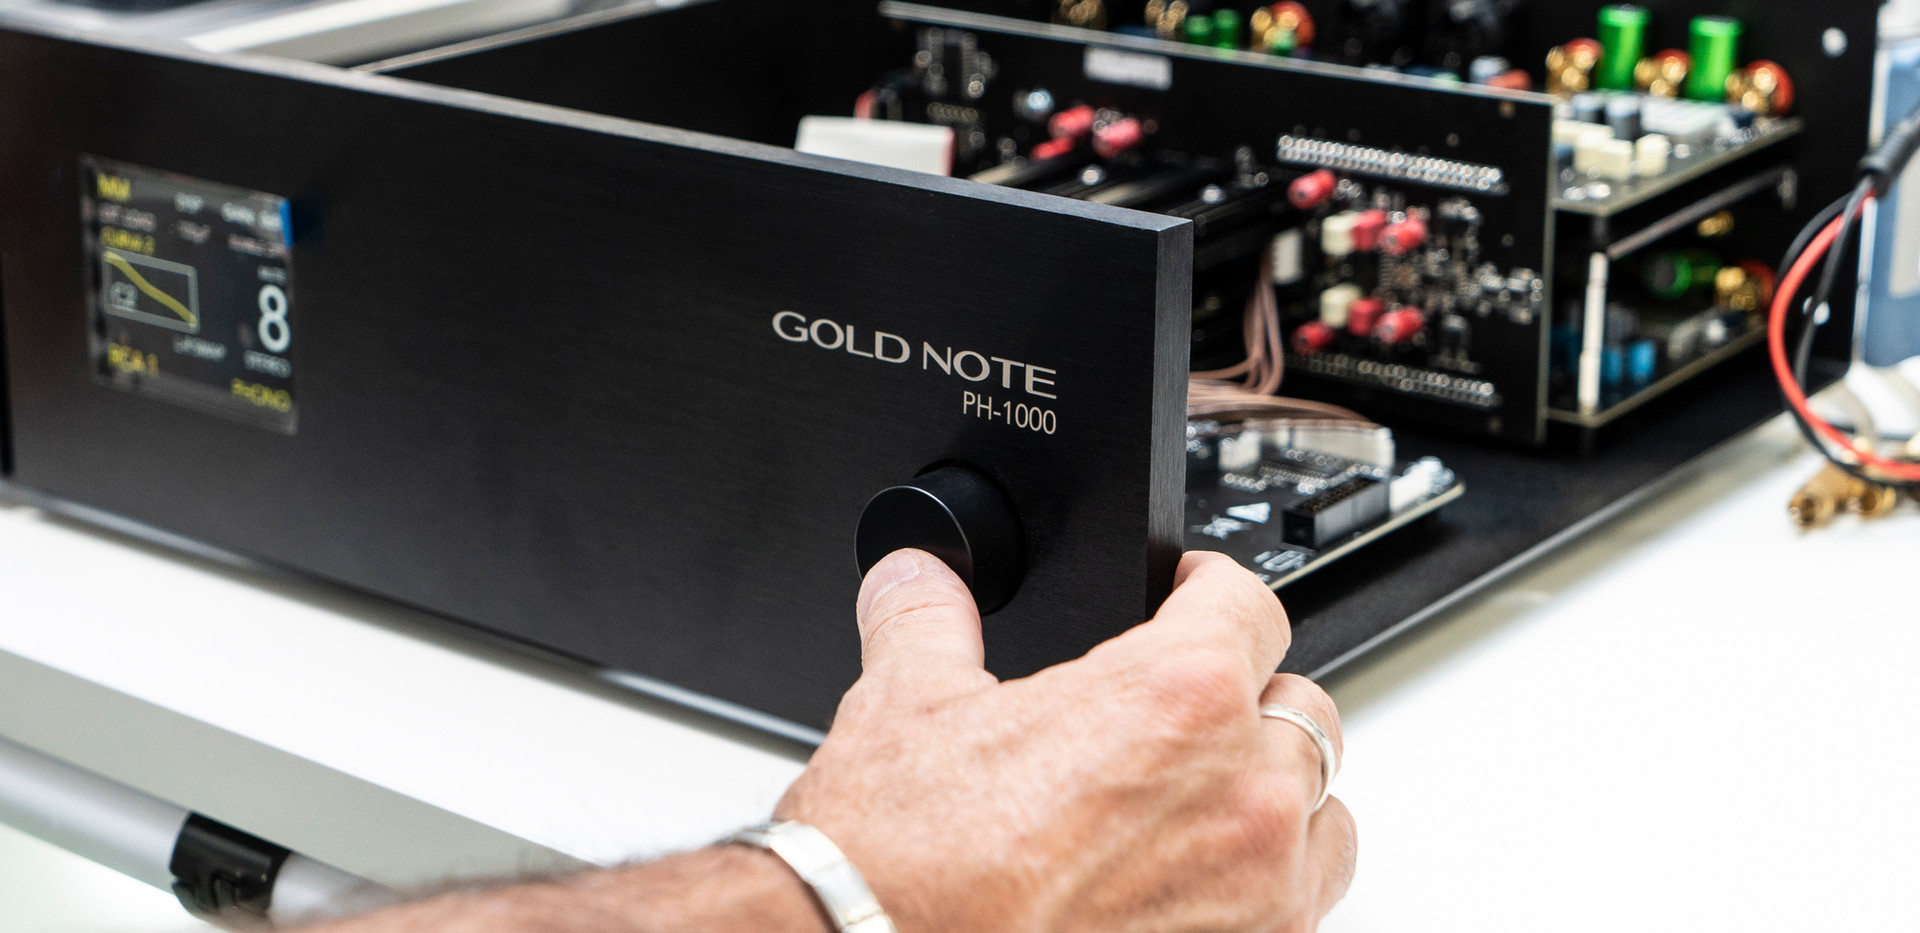 Gold Note PH-1000